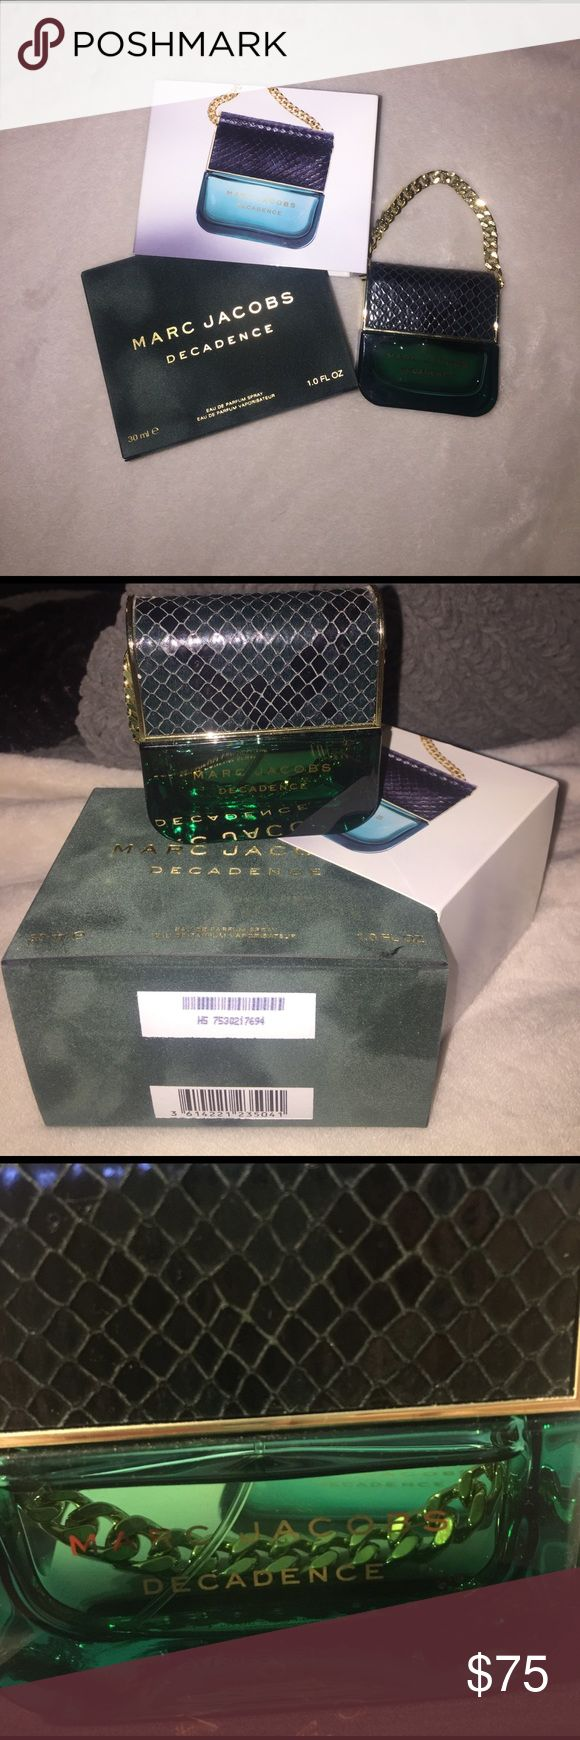 Marc Jacobs Decadence Marc Jacob Decadence Perfume, received as a gift, only used a couple times, perfect condition, i still have original packaging, offers are always welcome!:) Marc Jacobs Other